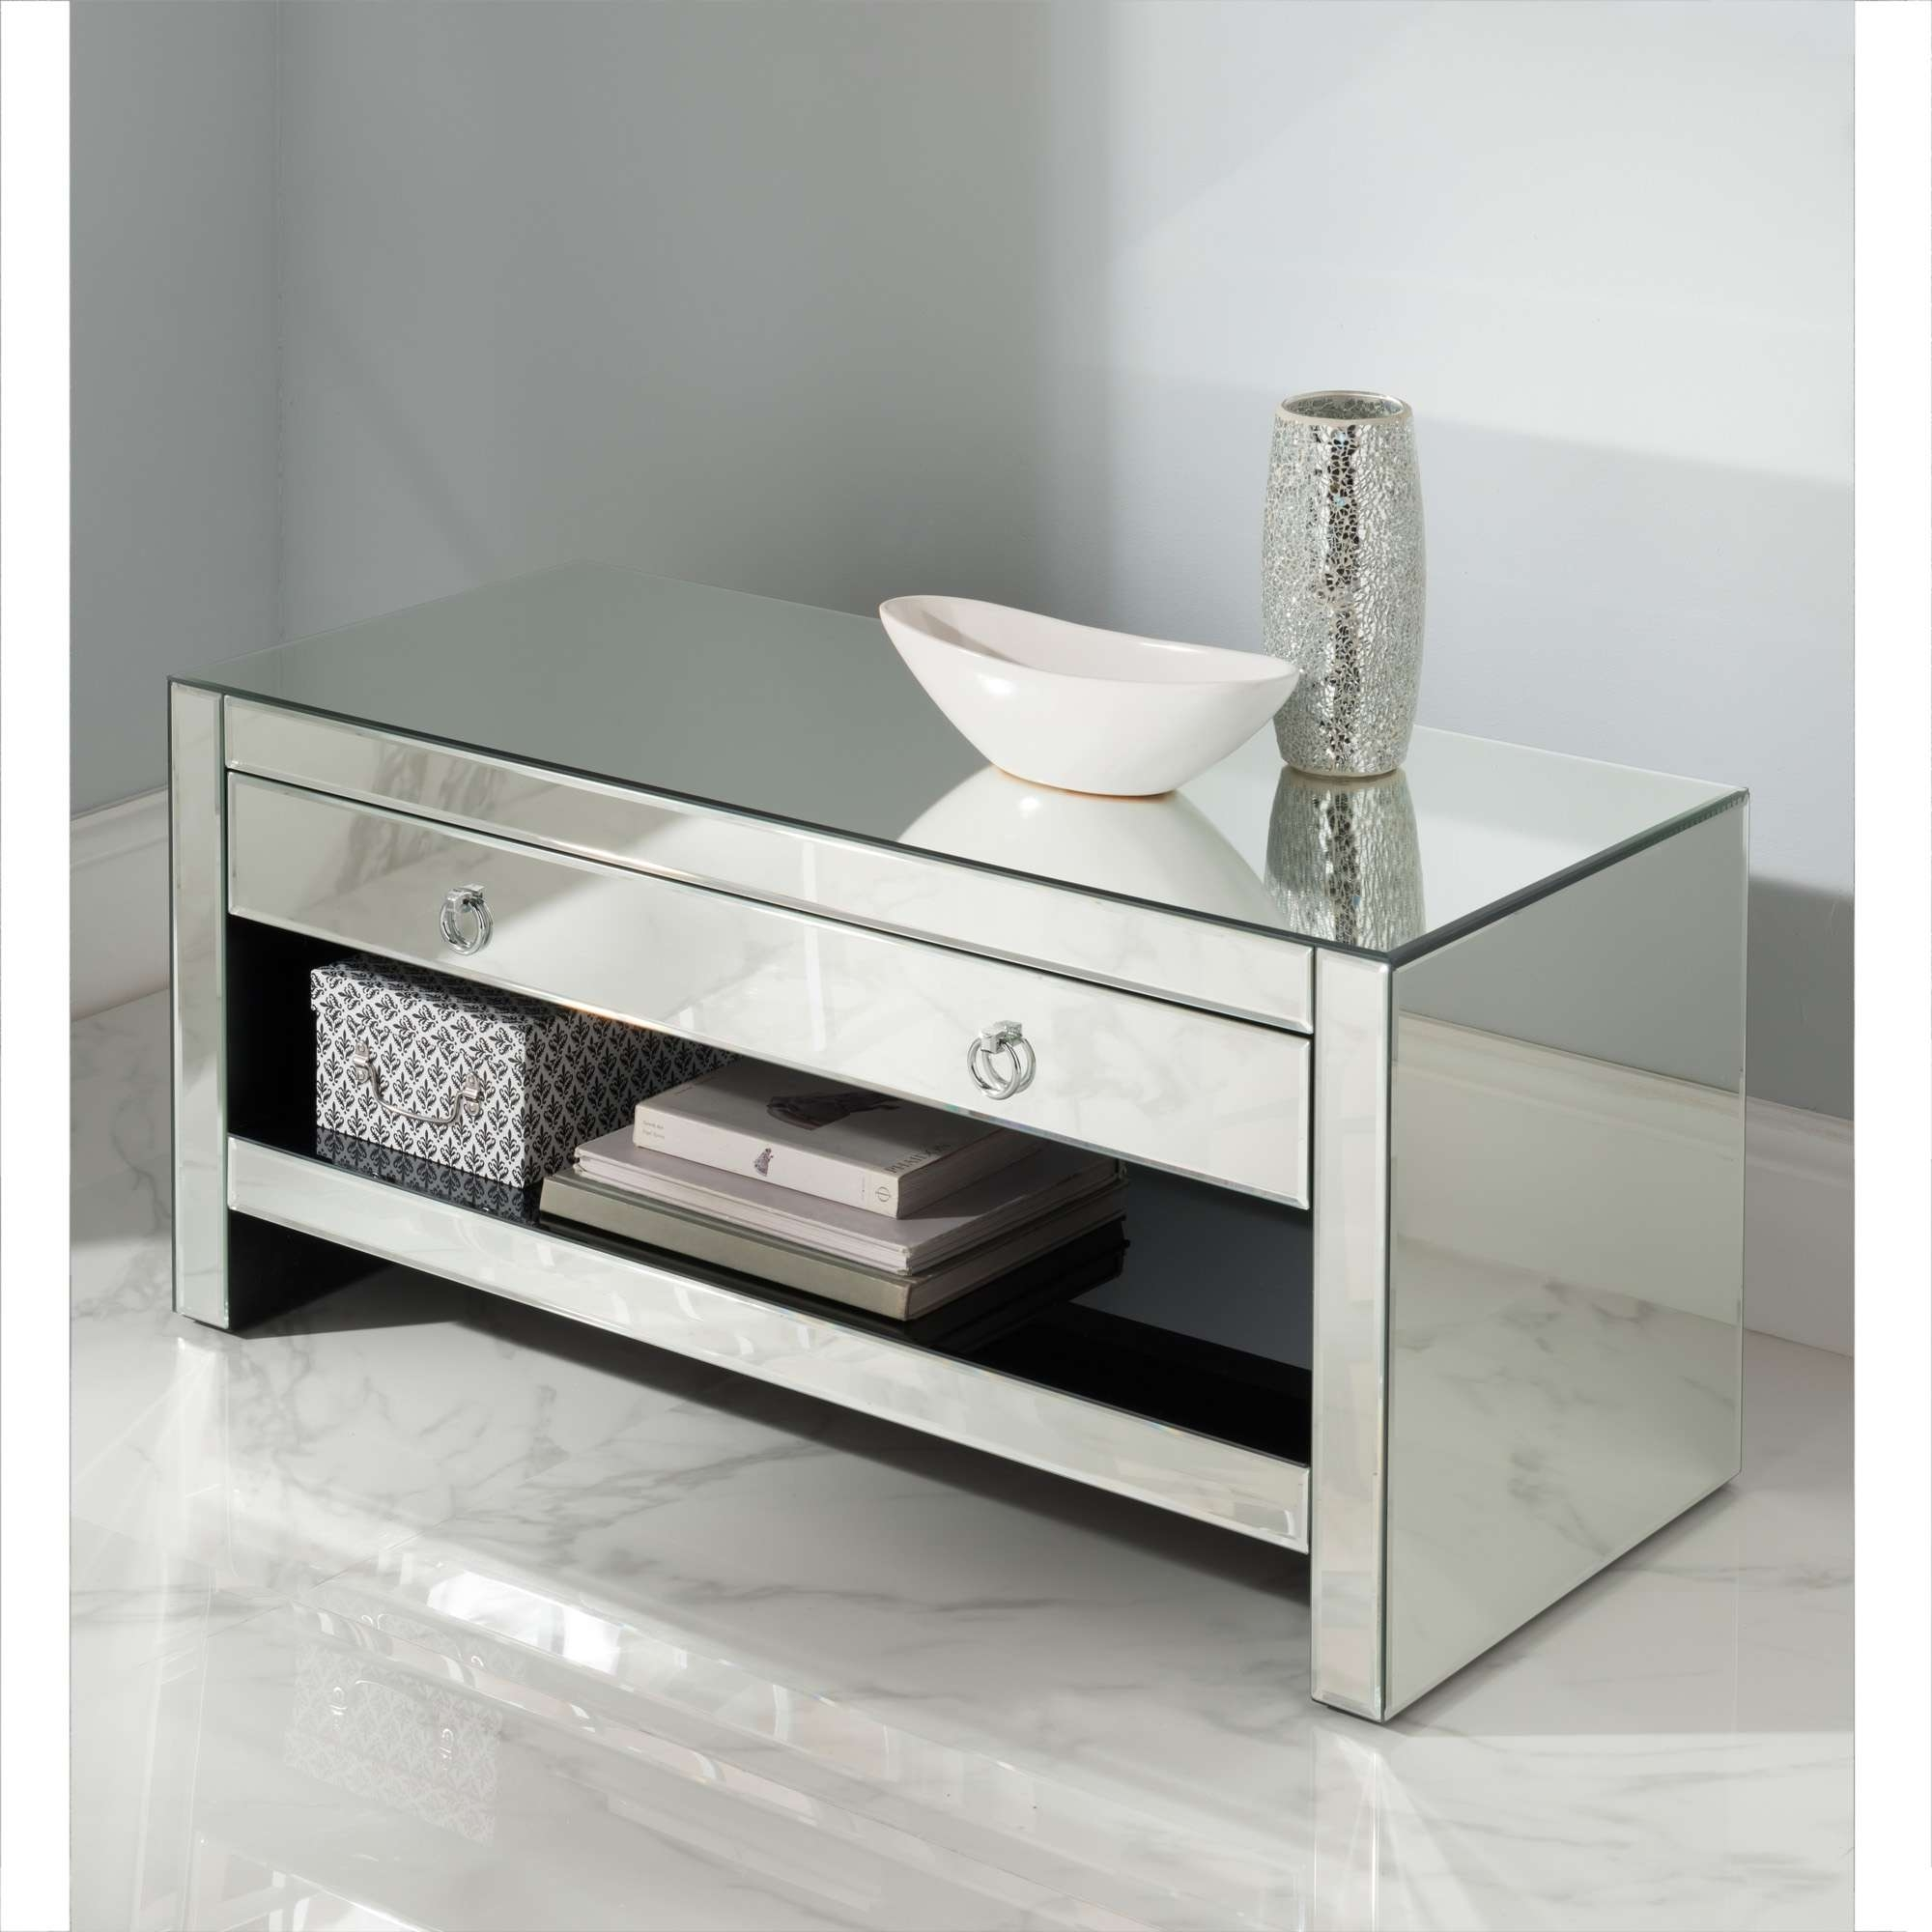 Mirrored Tv Cabinet | Glass Venetian Furniture | Homesdirect365 Pertaining To Mirrored Tv Cabinets Furniture (View 8 of 20)